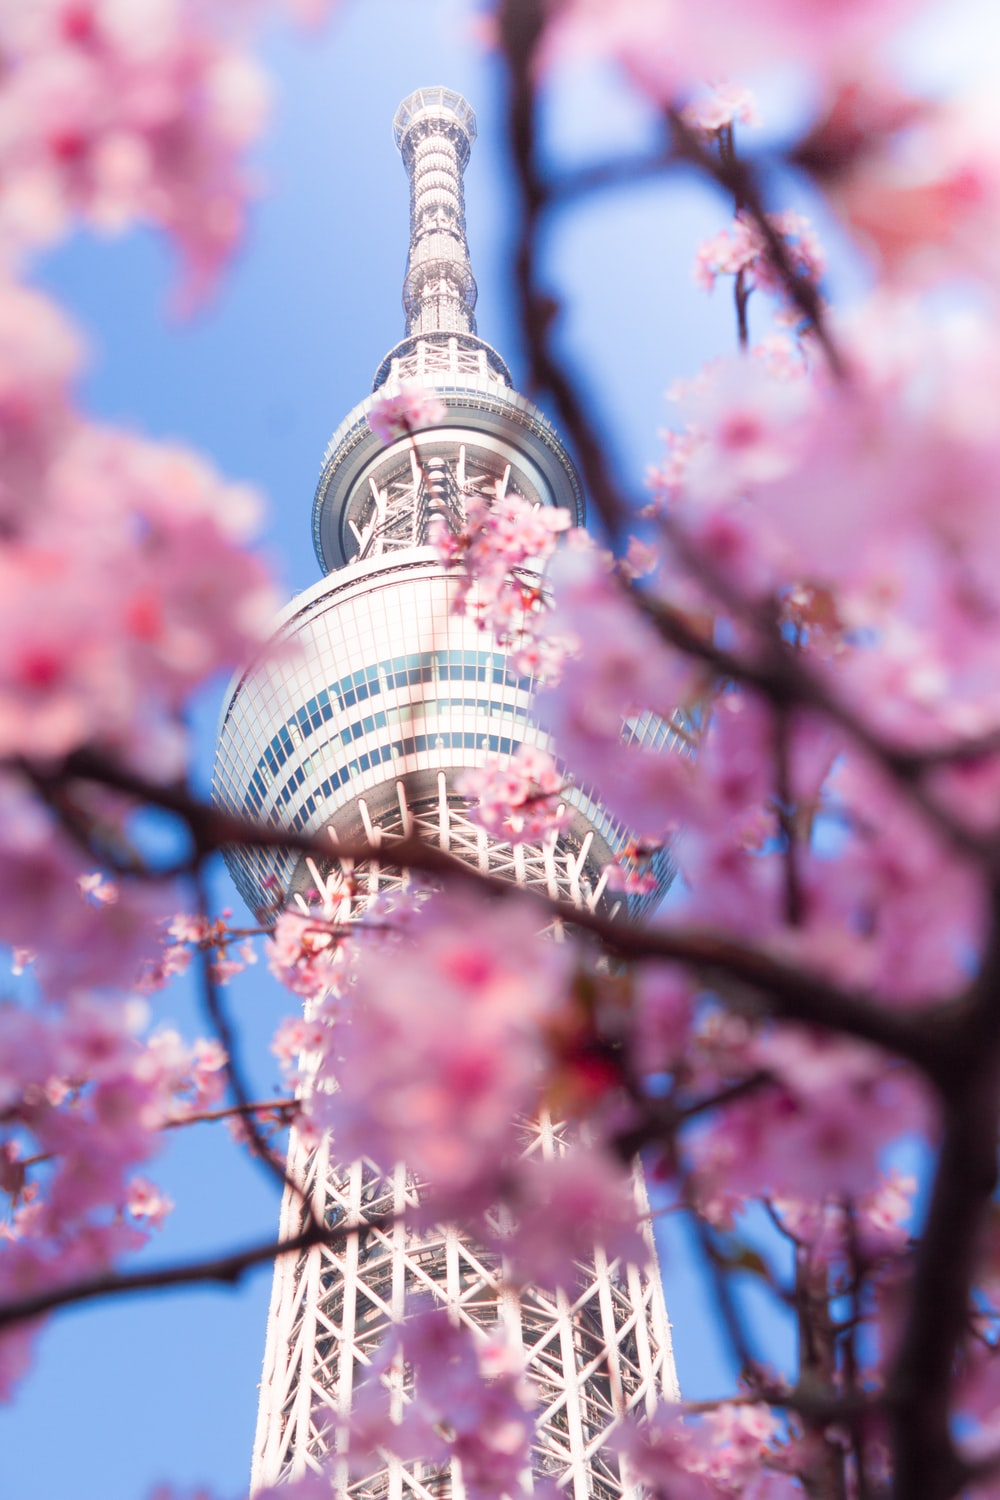 pink cherry blossom tree near white and blue tower during daytime